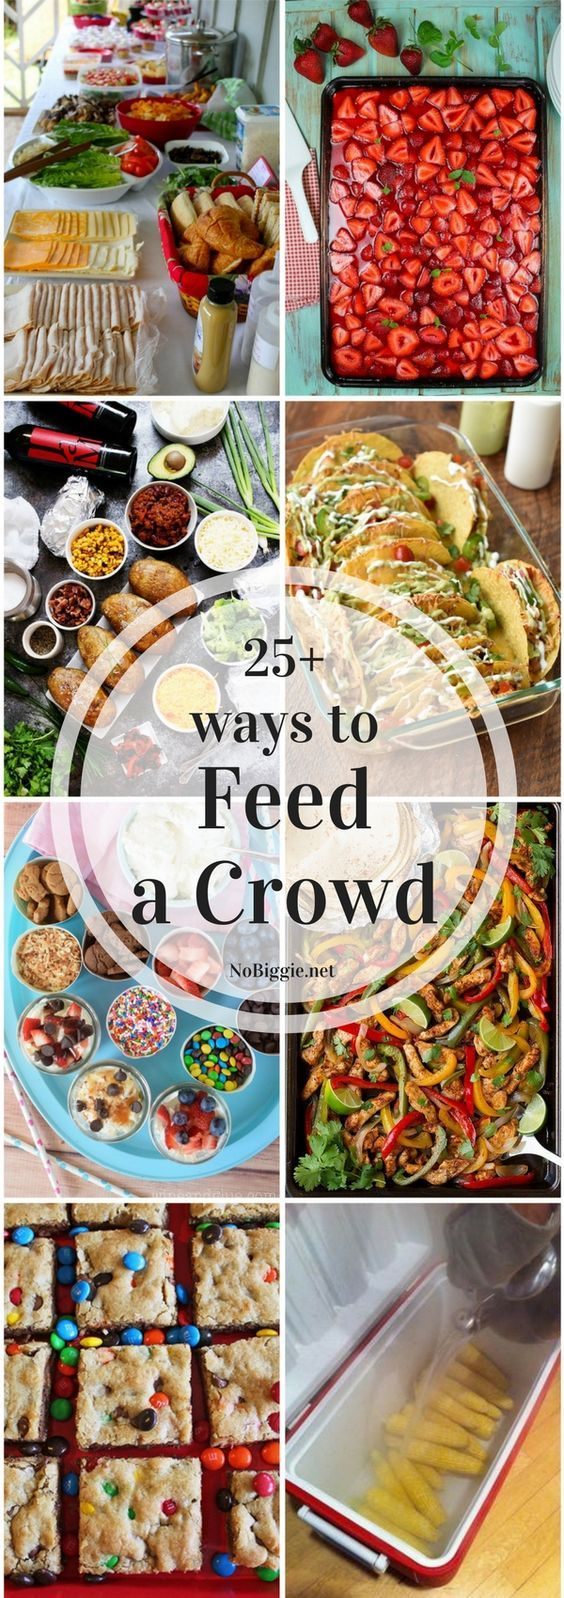 25+ Ways to Feed a Crowd